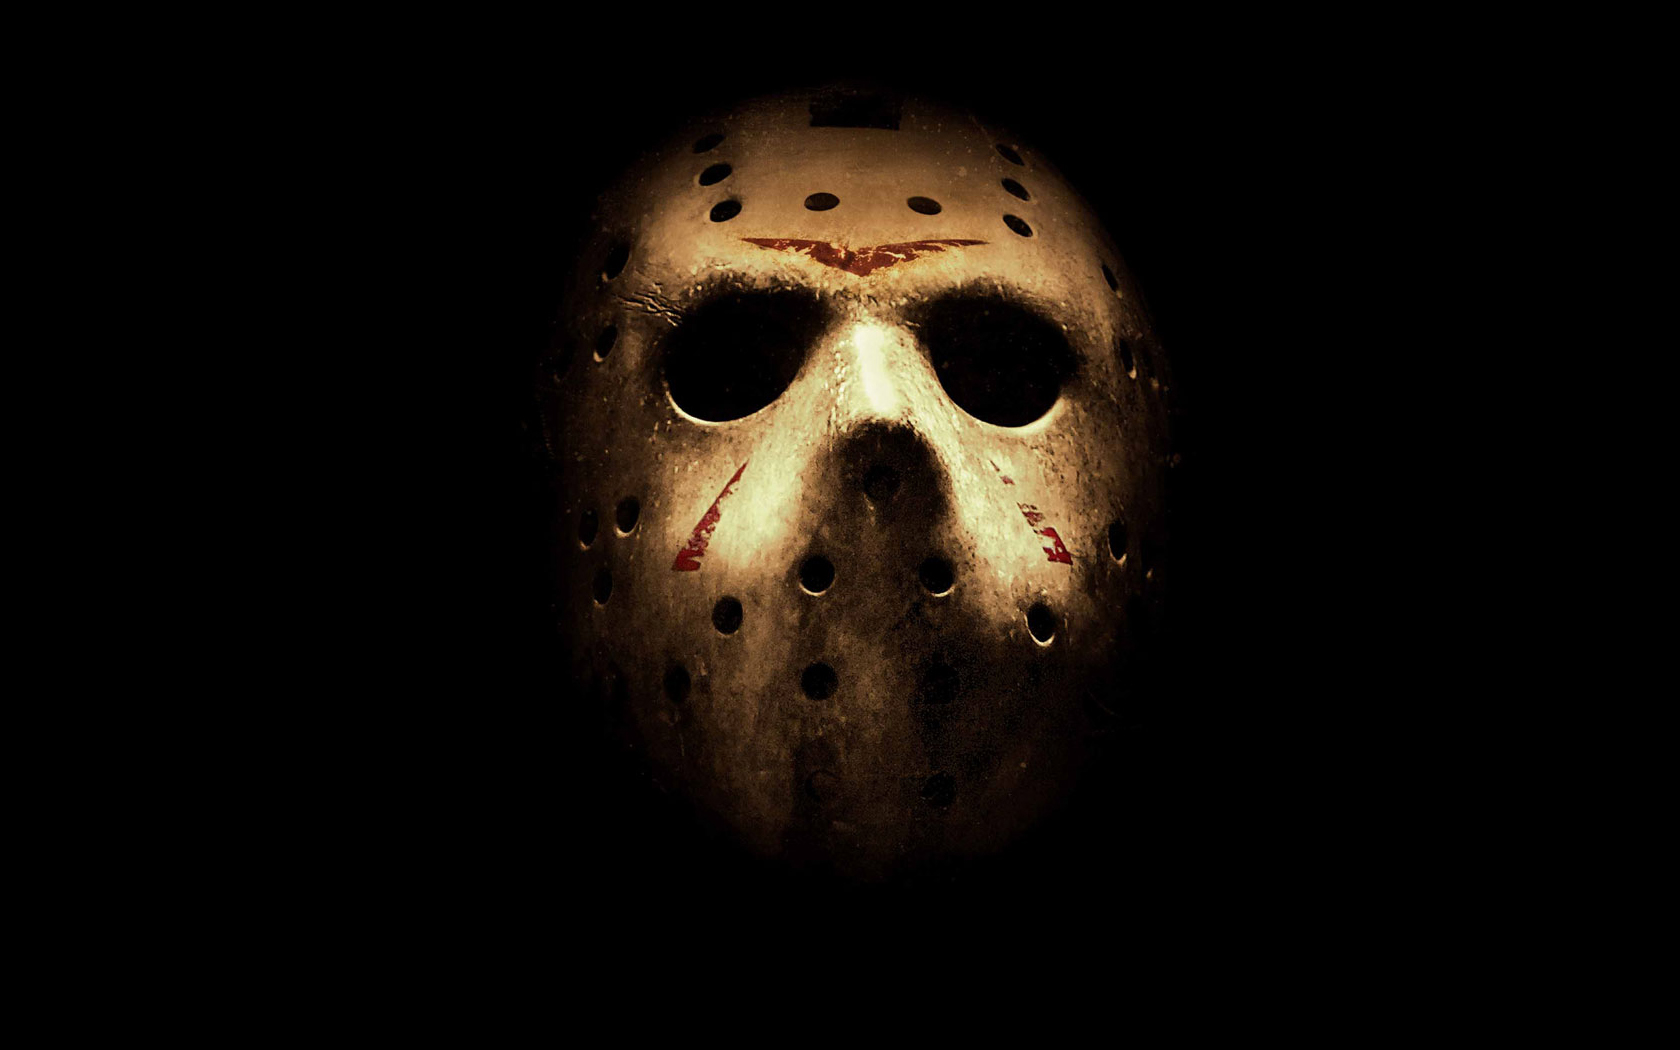 of Horror Movies Wallpapers Face of Horror Movies Myspace Backgrounds 1680x1050